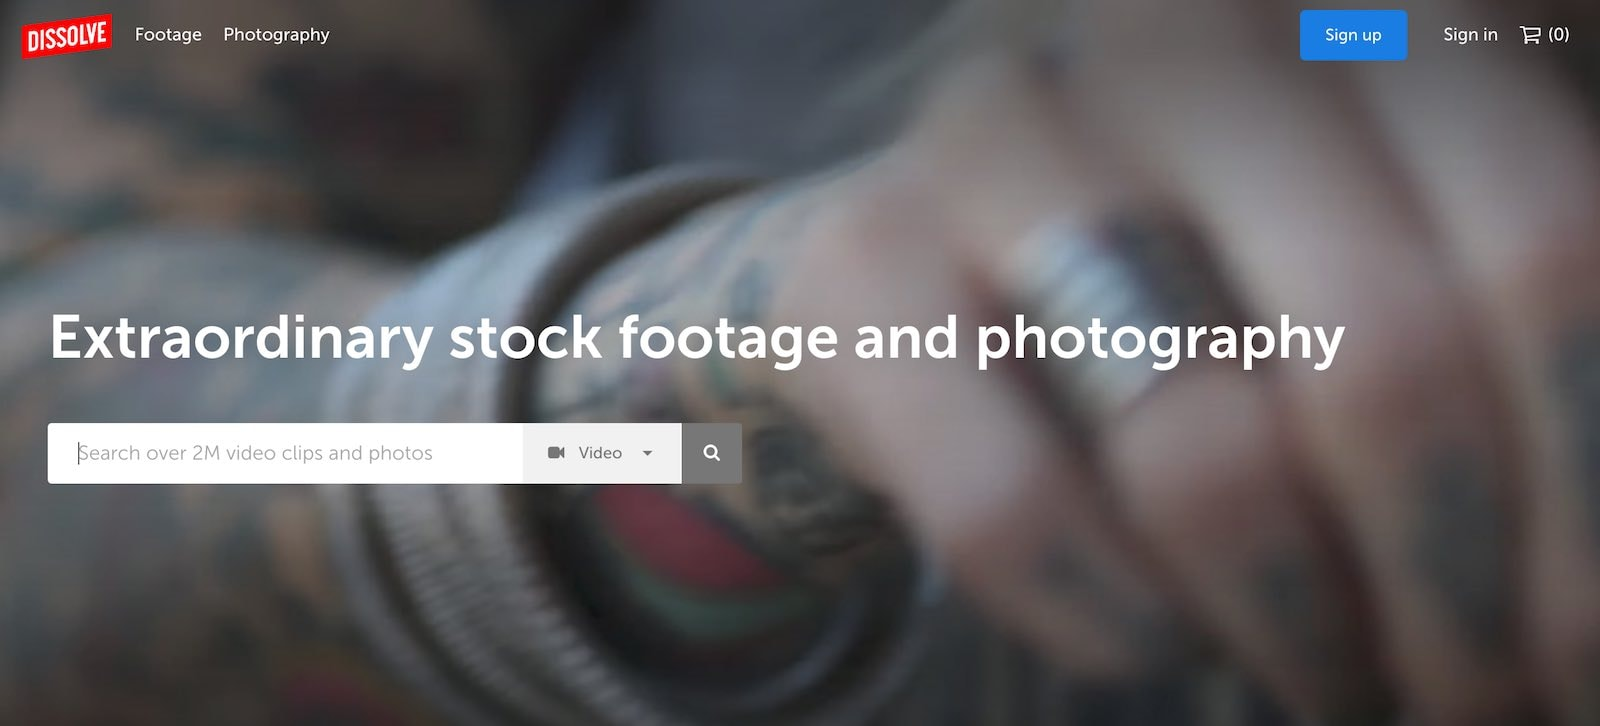 Dissolve stock video website